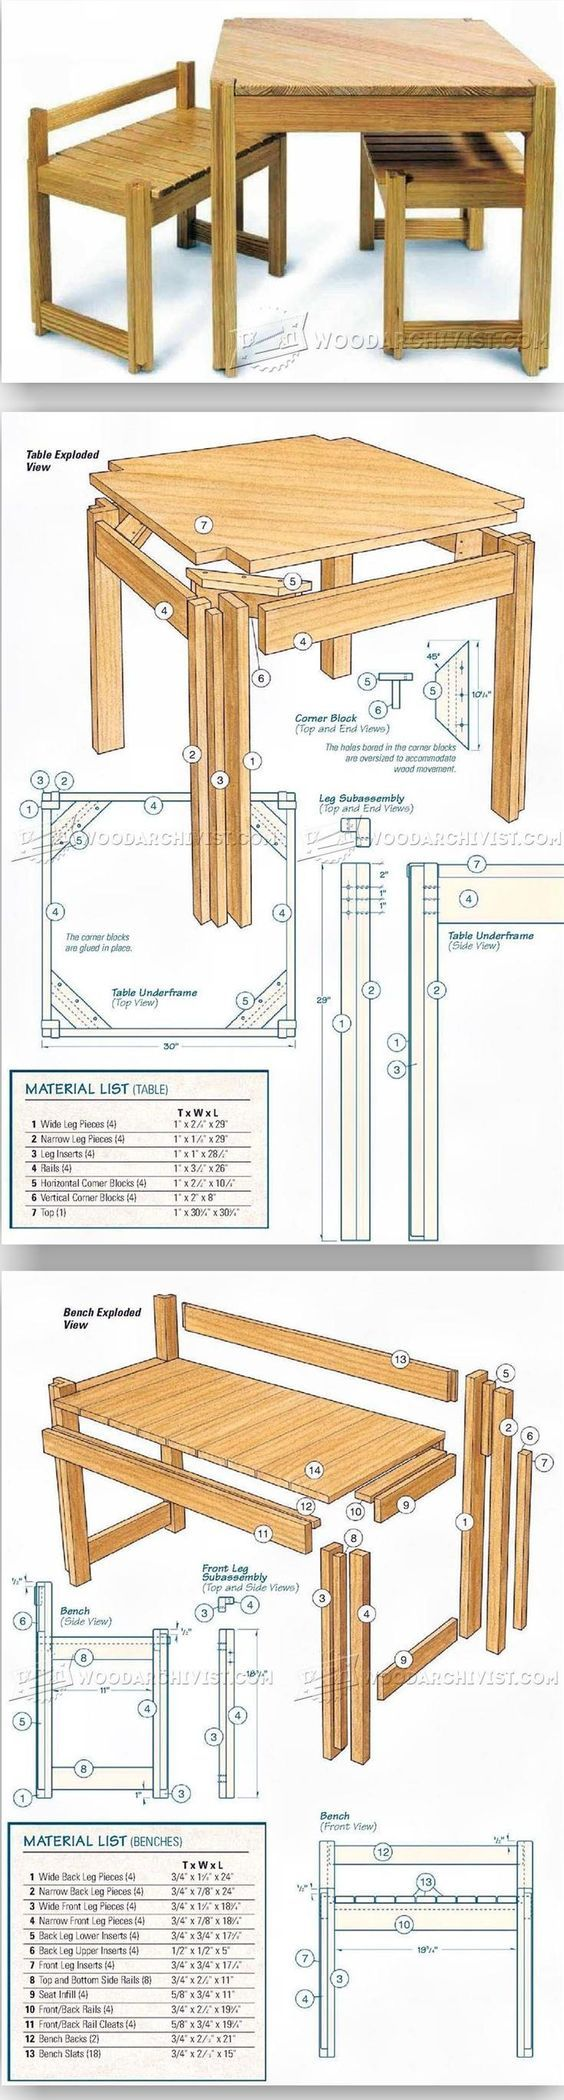 758 best DIY-Pläne images on Pinterest | Carpentry, Chairs and Closets